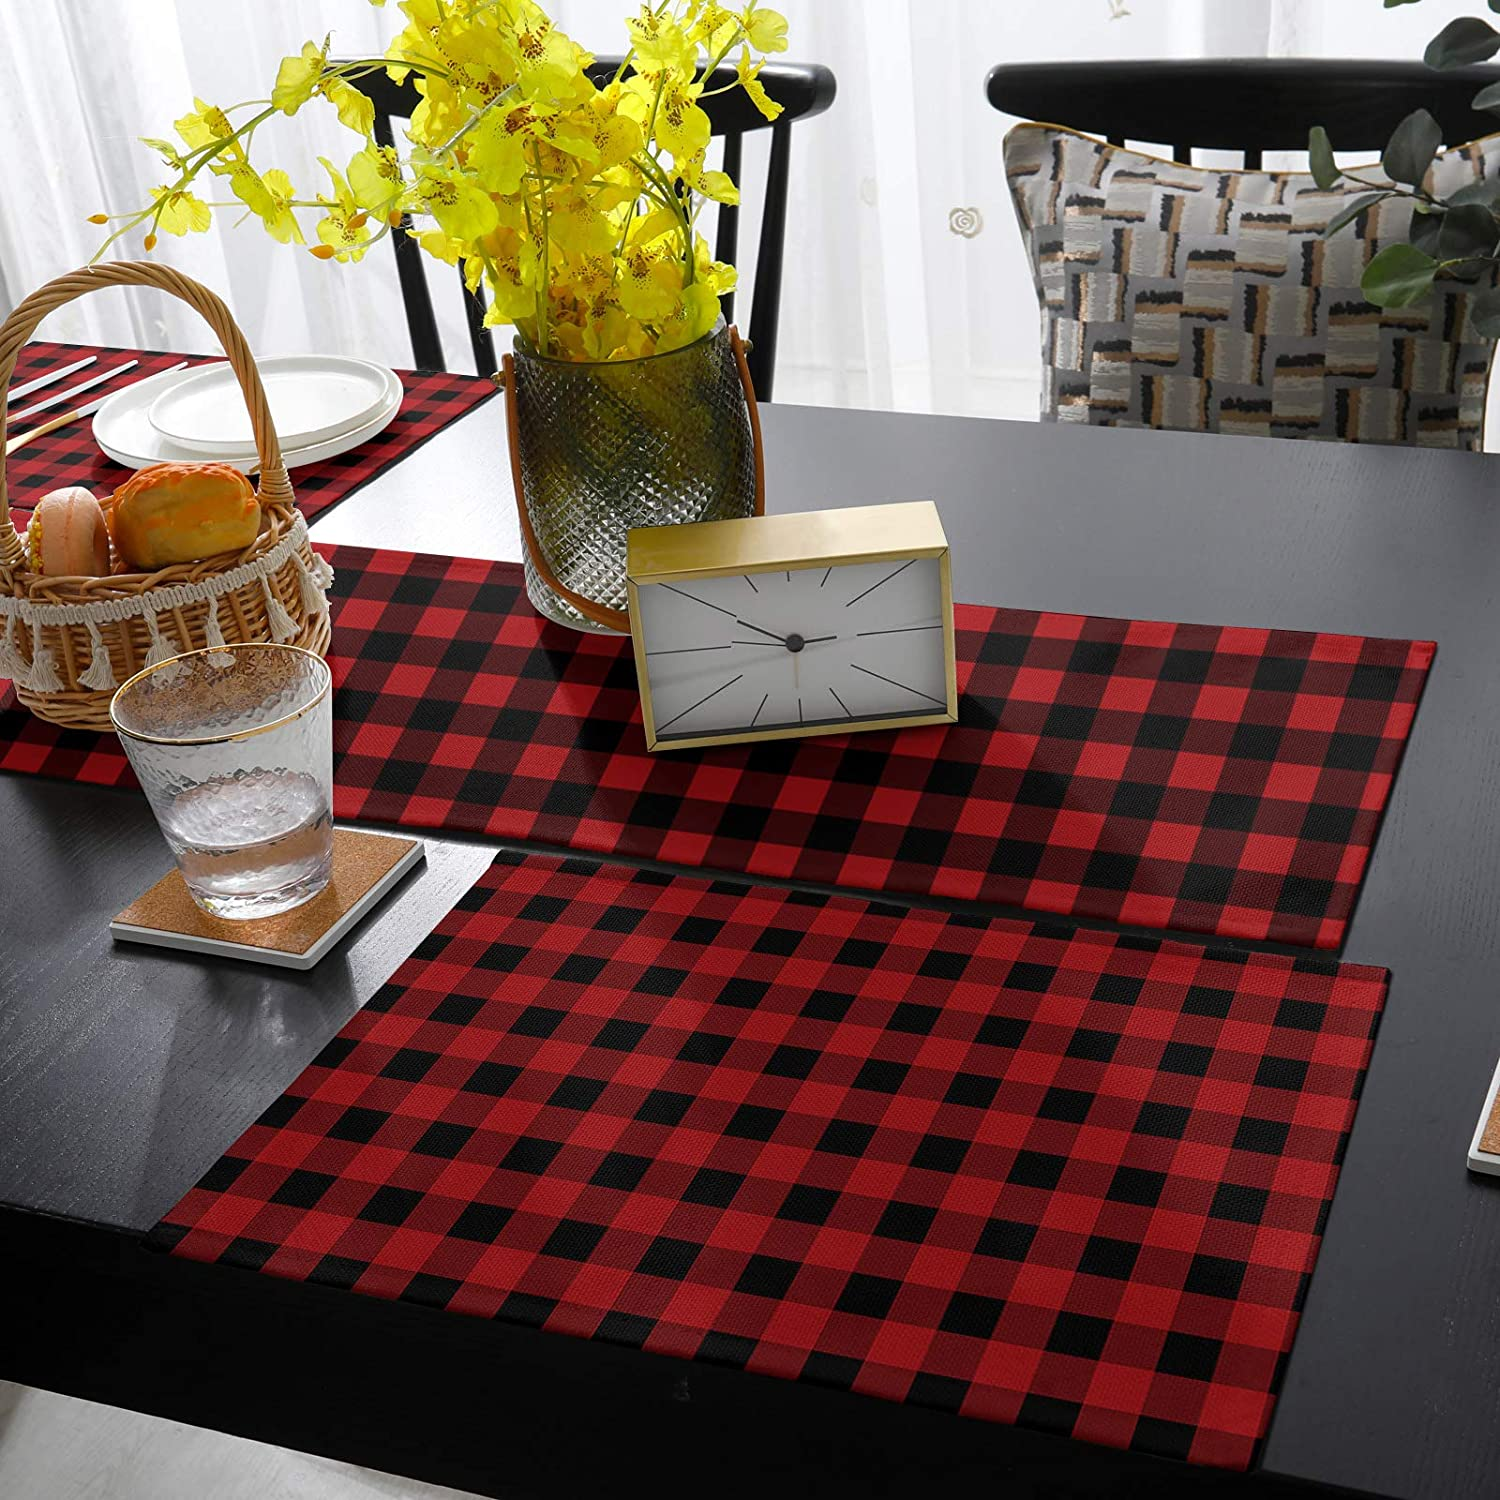 Fangship Max 52% OFF Placemats with online shop Table Runner Set Dining for Nordic